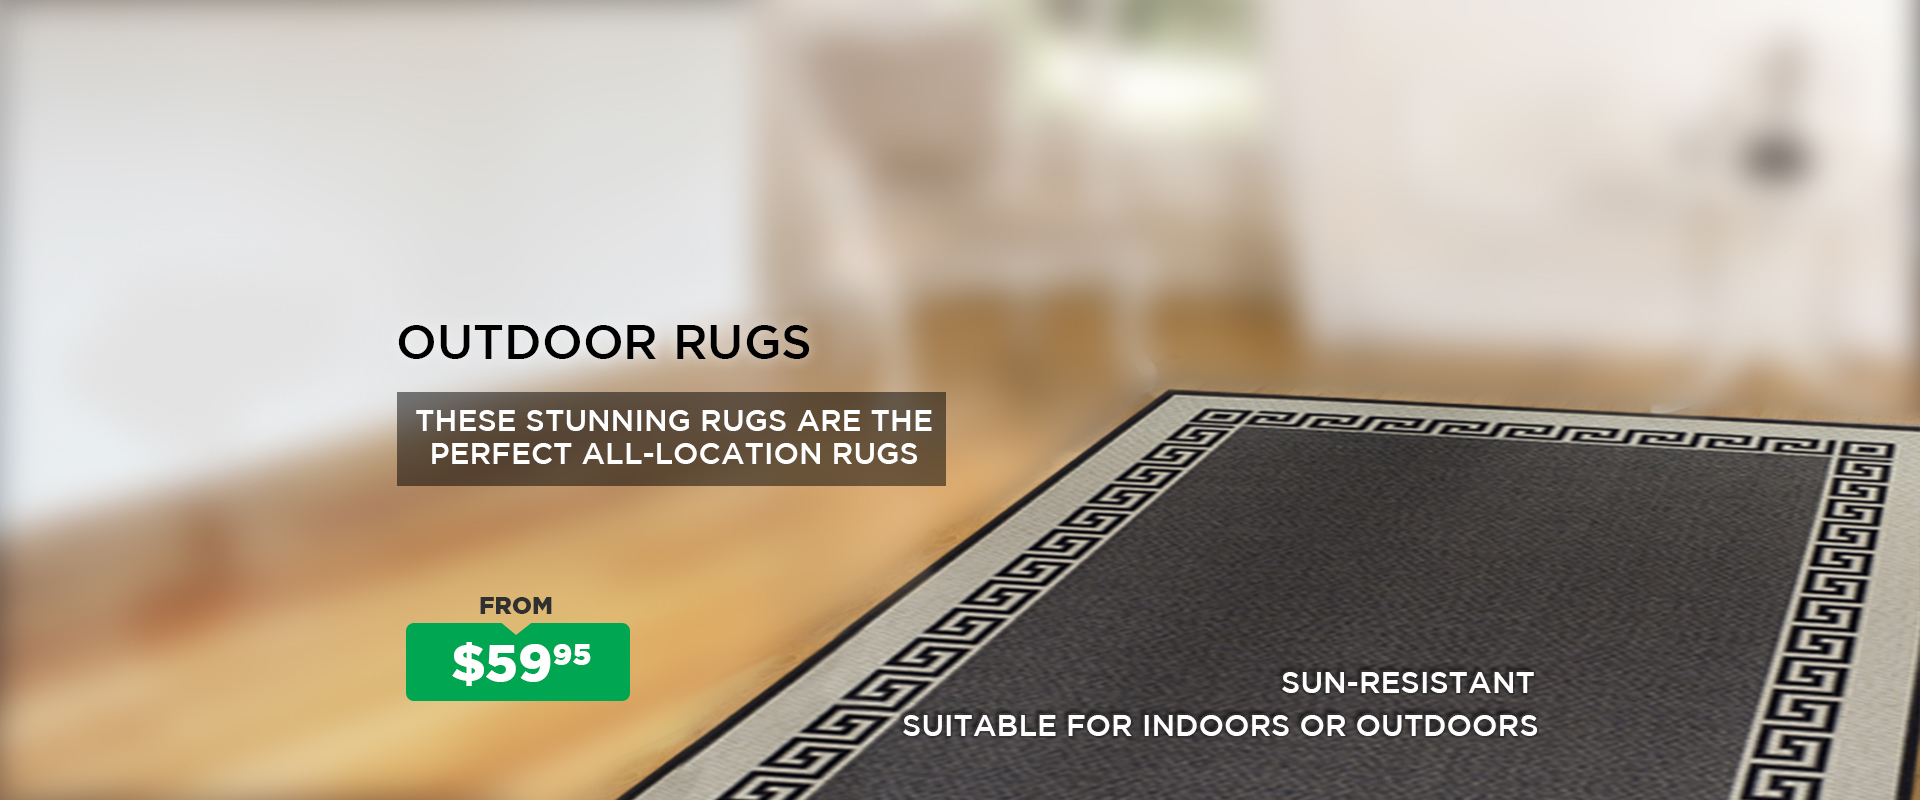 04-outdoor-rugs